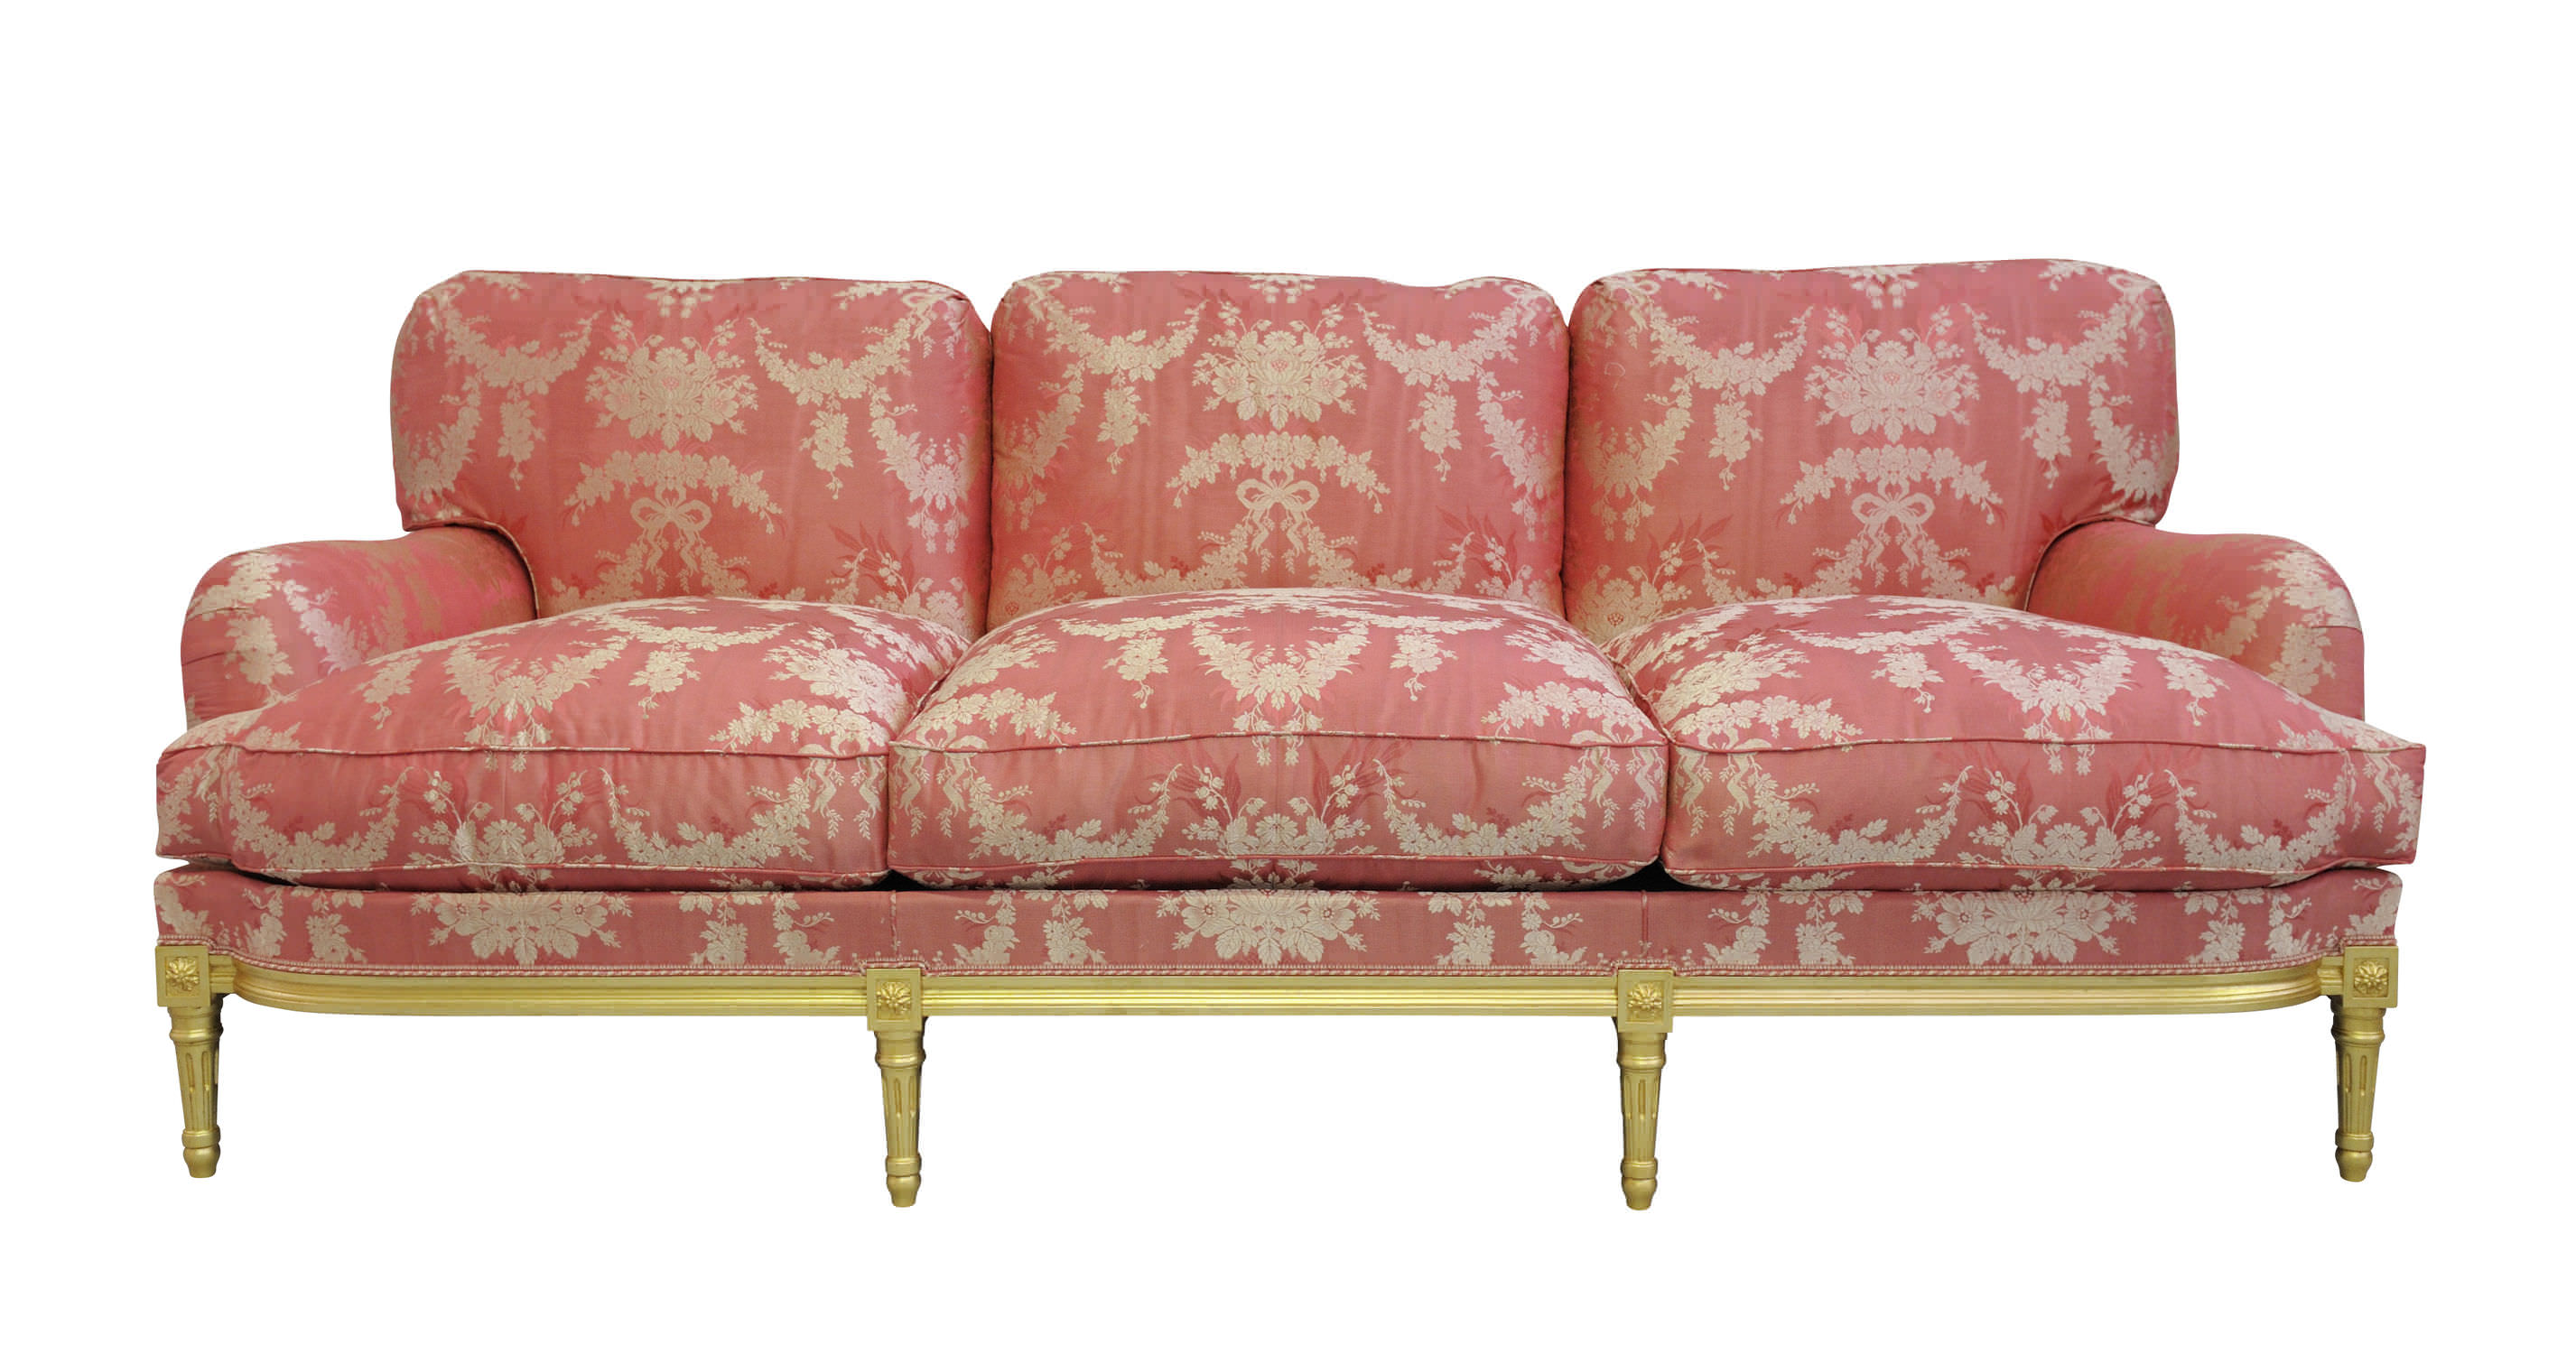 Louis Xvi Style Sofa Fabric 3 Seater Multi Color Sophie